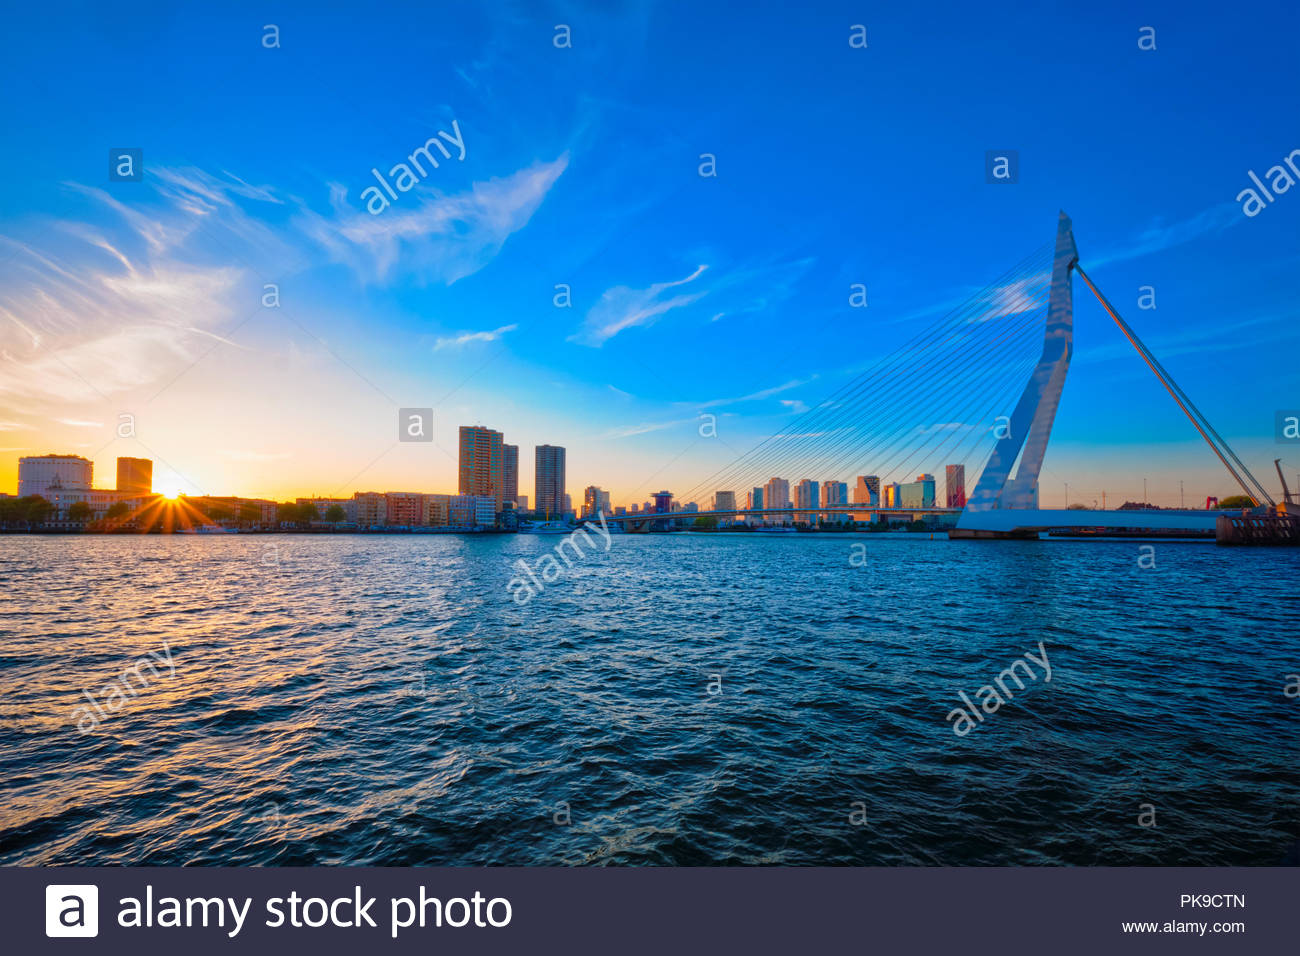 Erasmus Bridge on sunset, Rotterdam, Netherlands Stock Photo